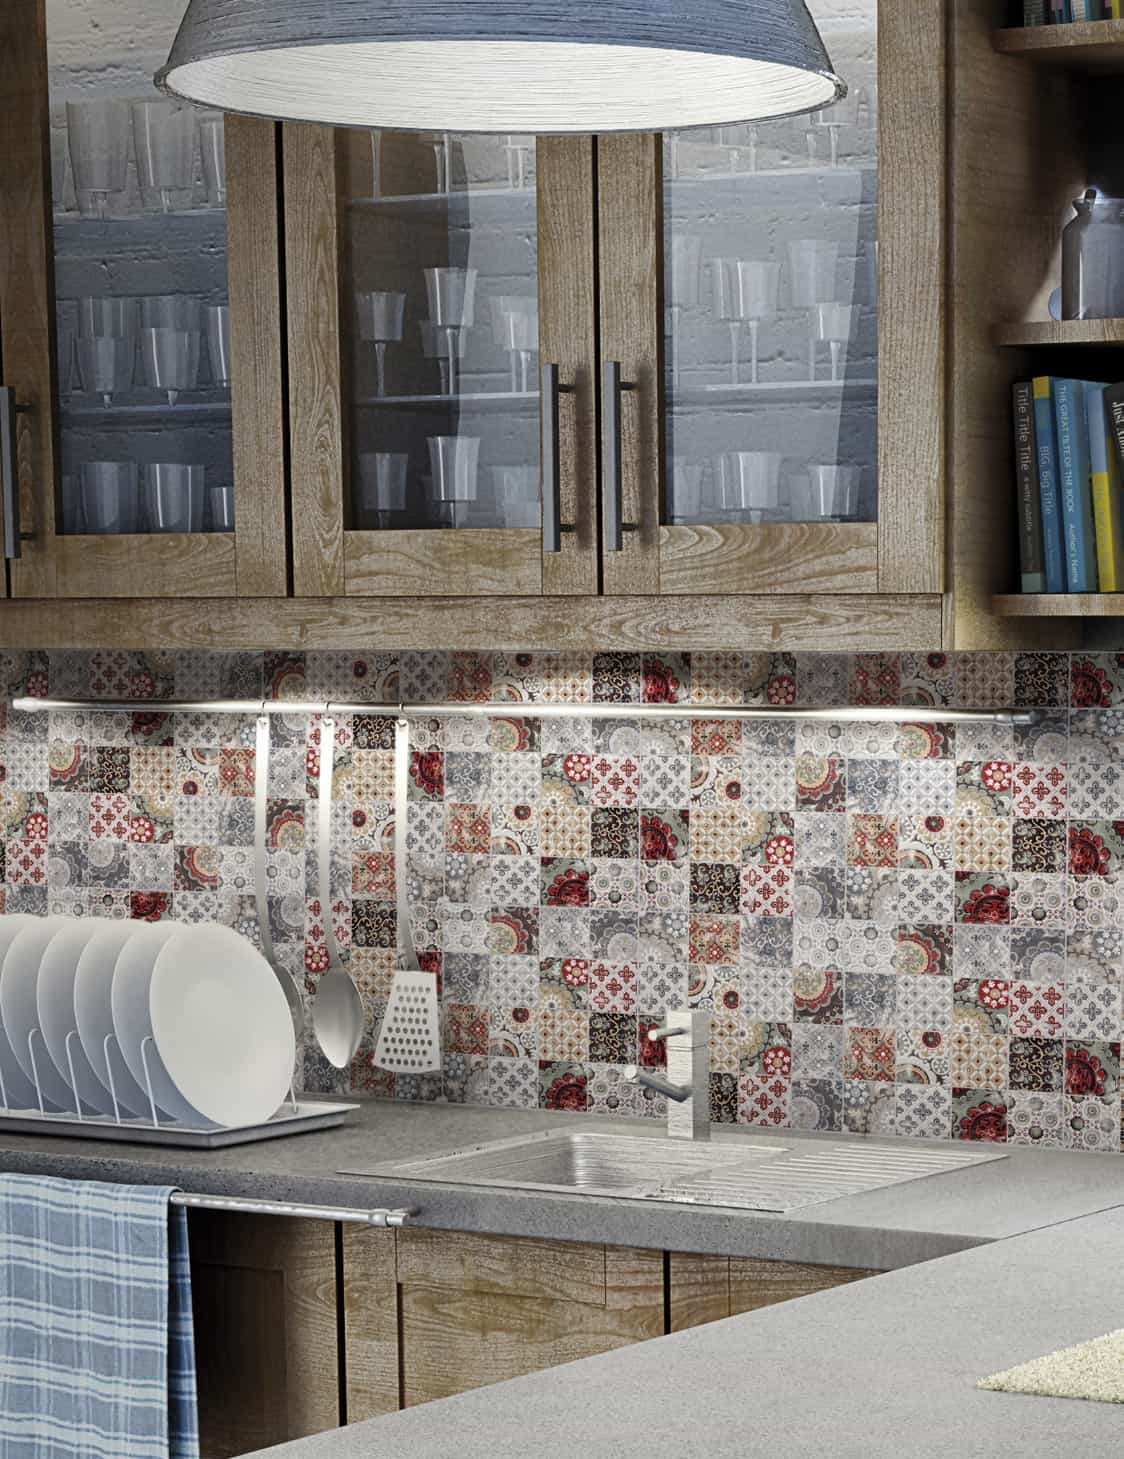 patchwork backsplash country style kitchen ideas homestead country kitchen backsplash ideas pictures